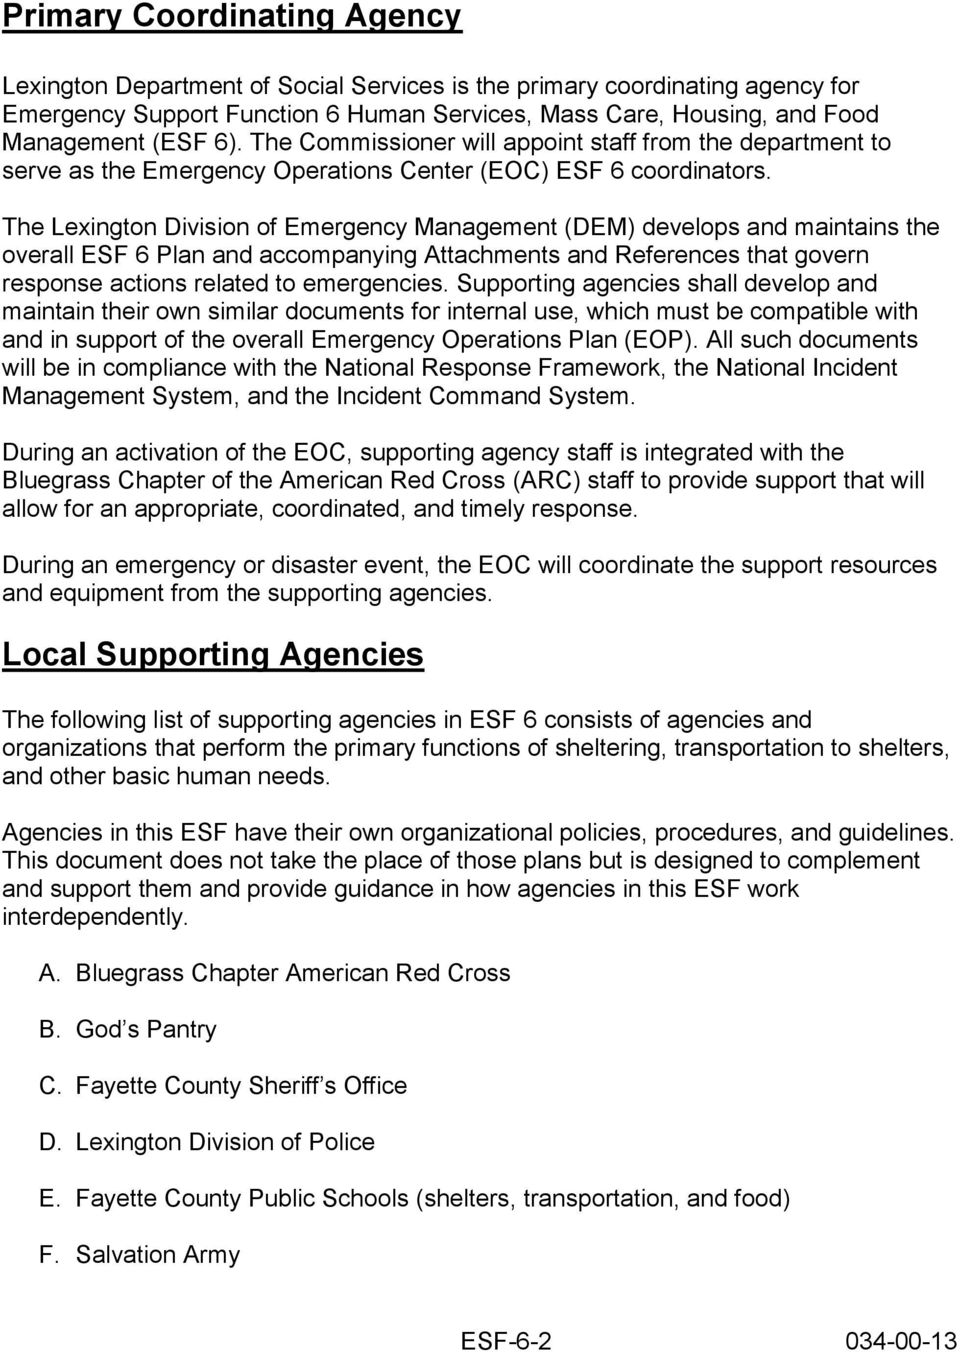 The Lexington Division of Emergency Management (DEM) develops and maintains the overall ESF 6 Plan and accompanying Attachments and References that govern response actions related to emergencies.